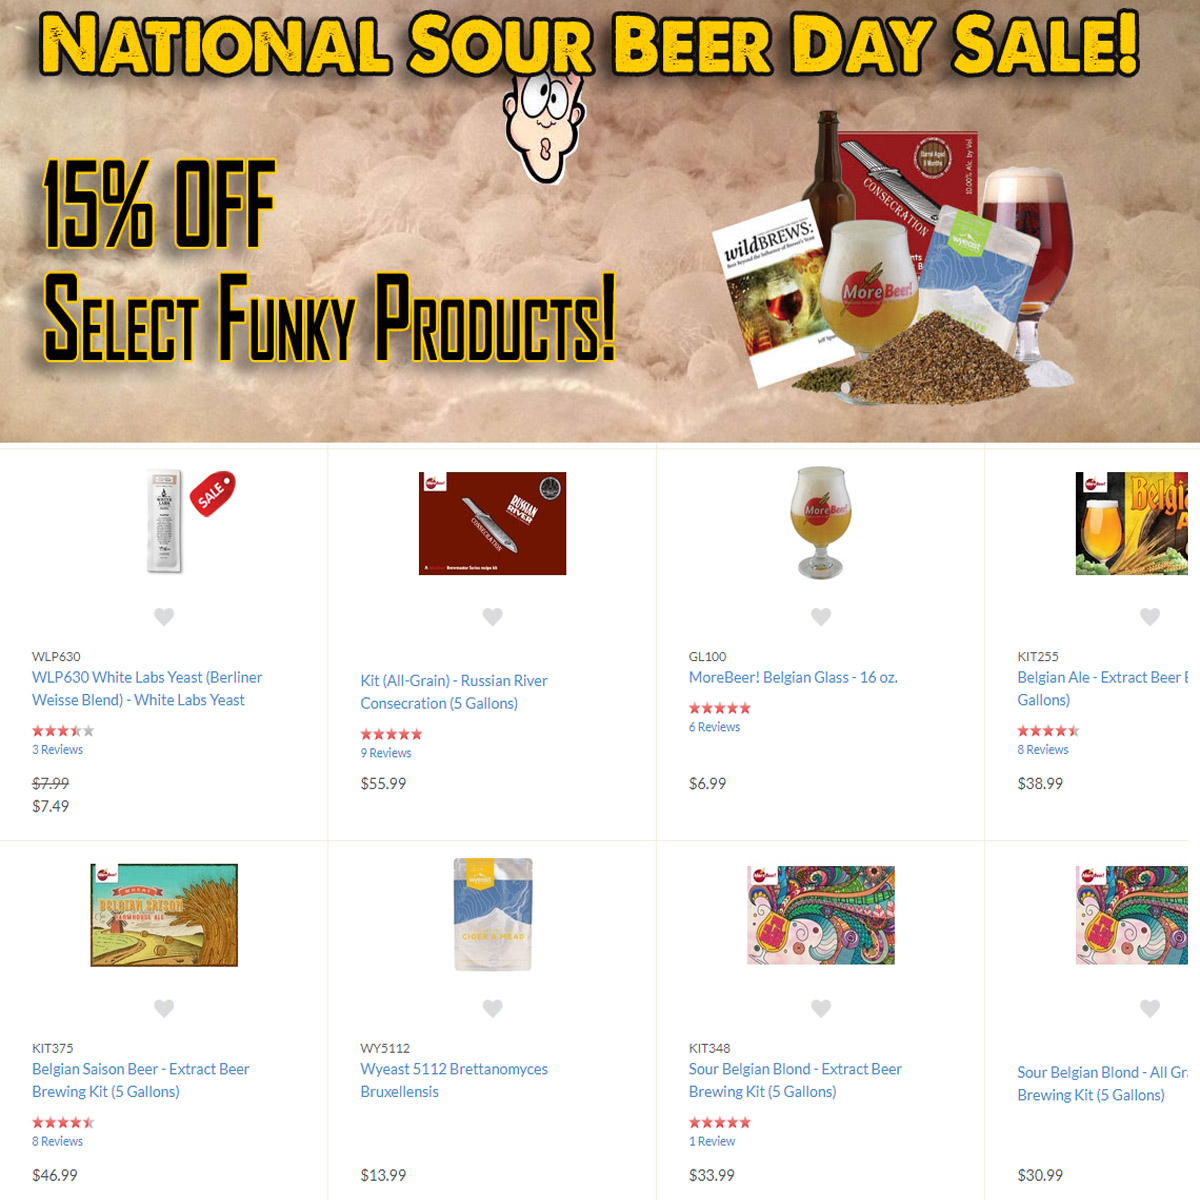 MoreBeer Use this MoreBeer.com promo code for 15% off select MoreBeer products Coupon Code